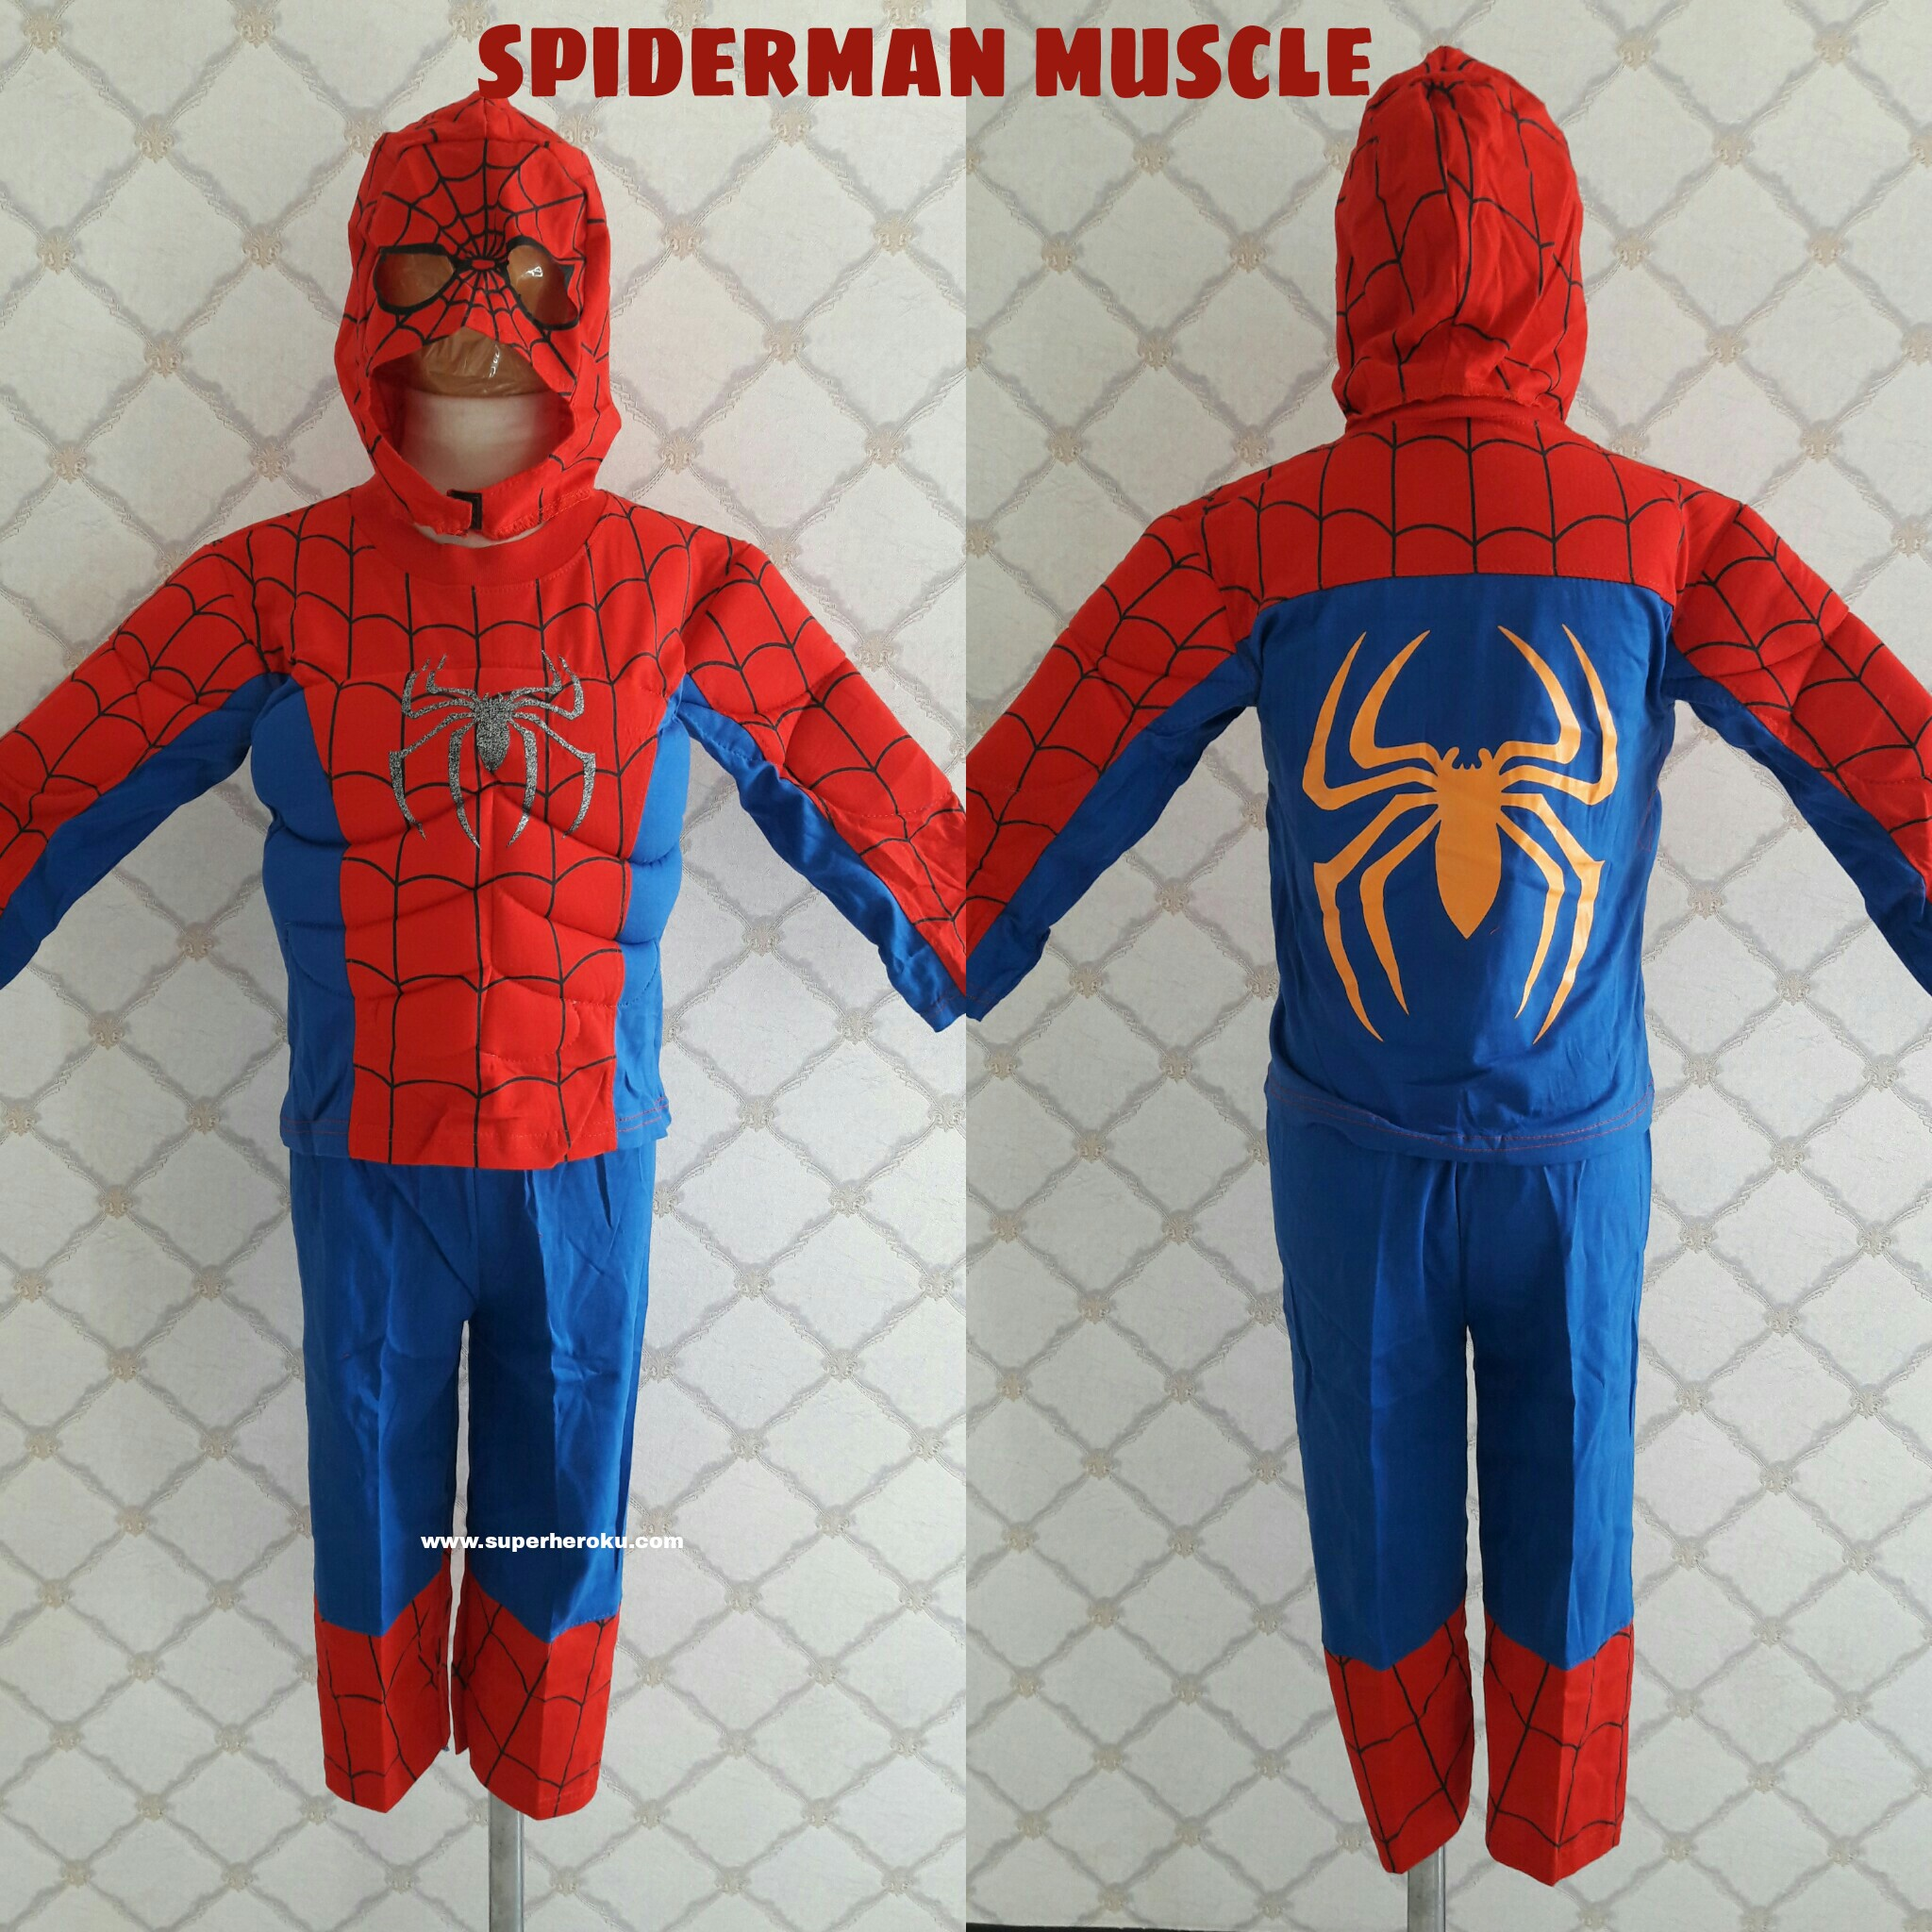 Kostum Anak Spiderman Muscle Otot